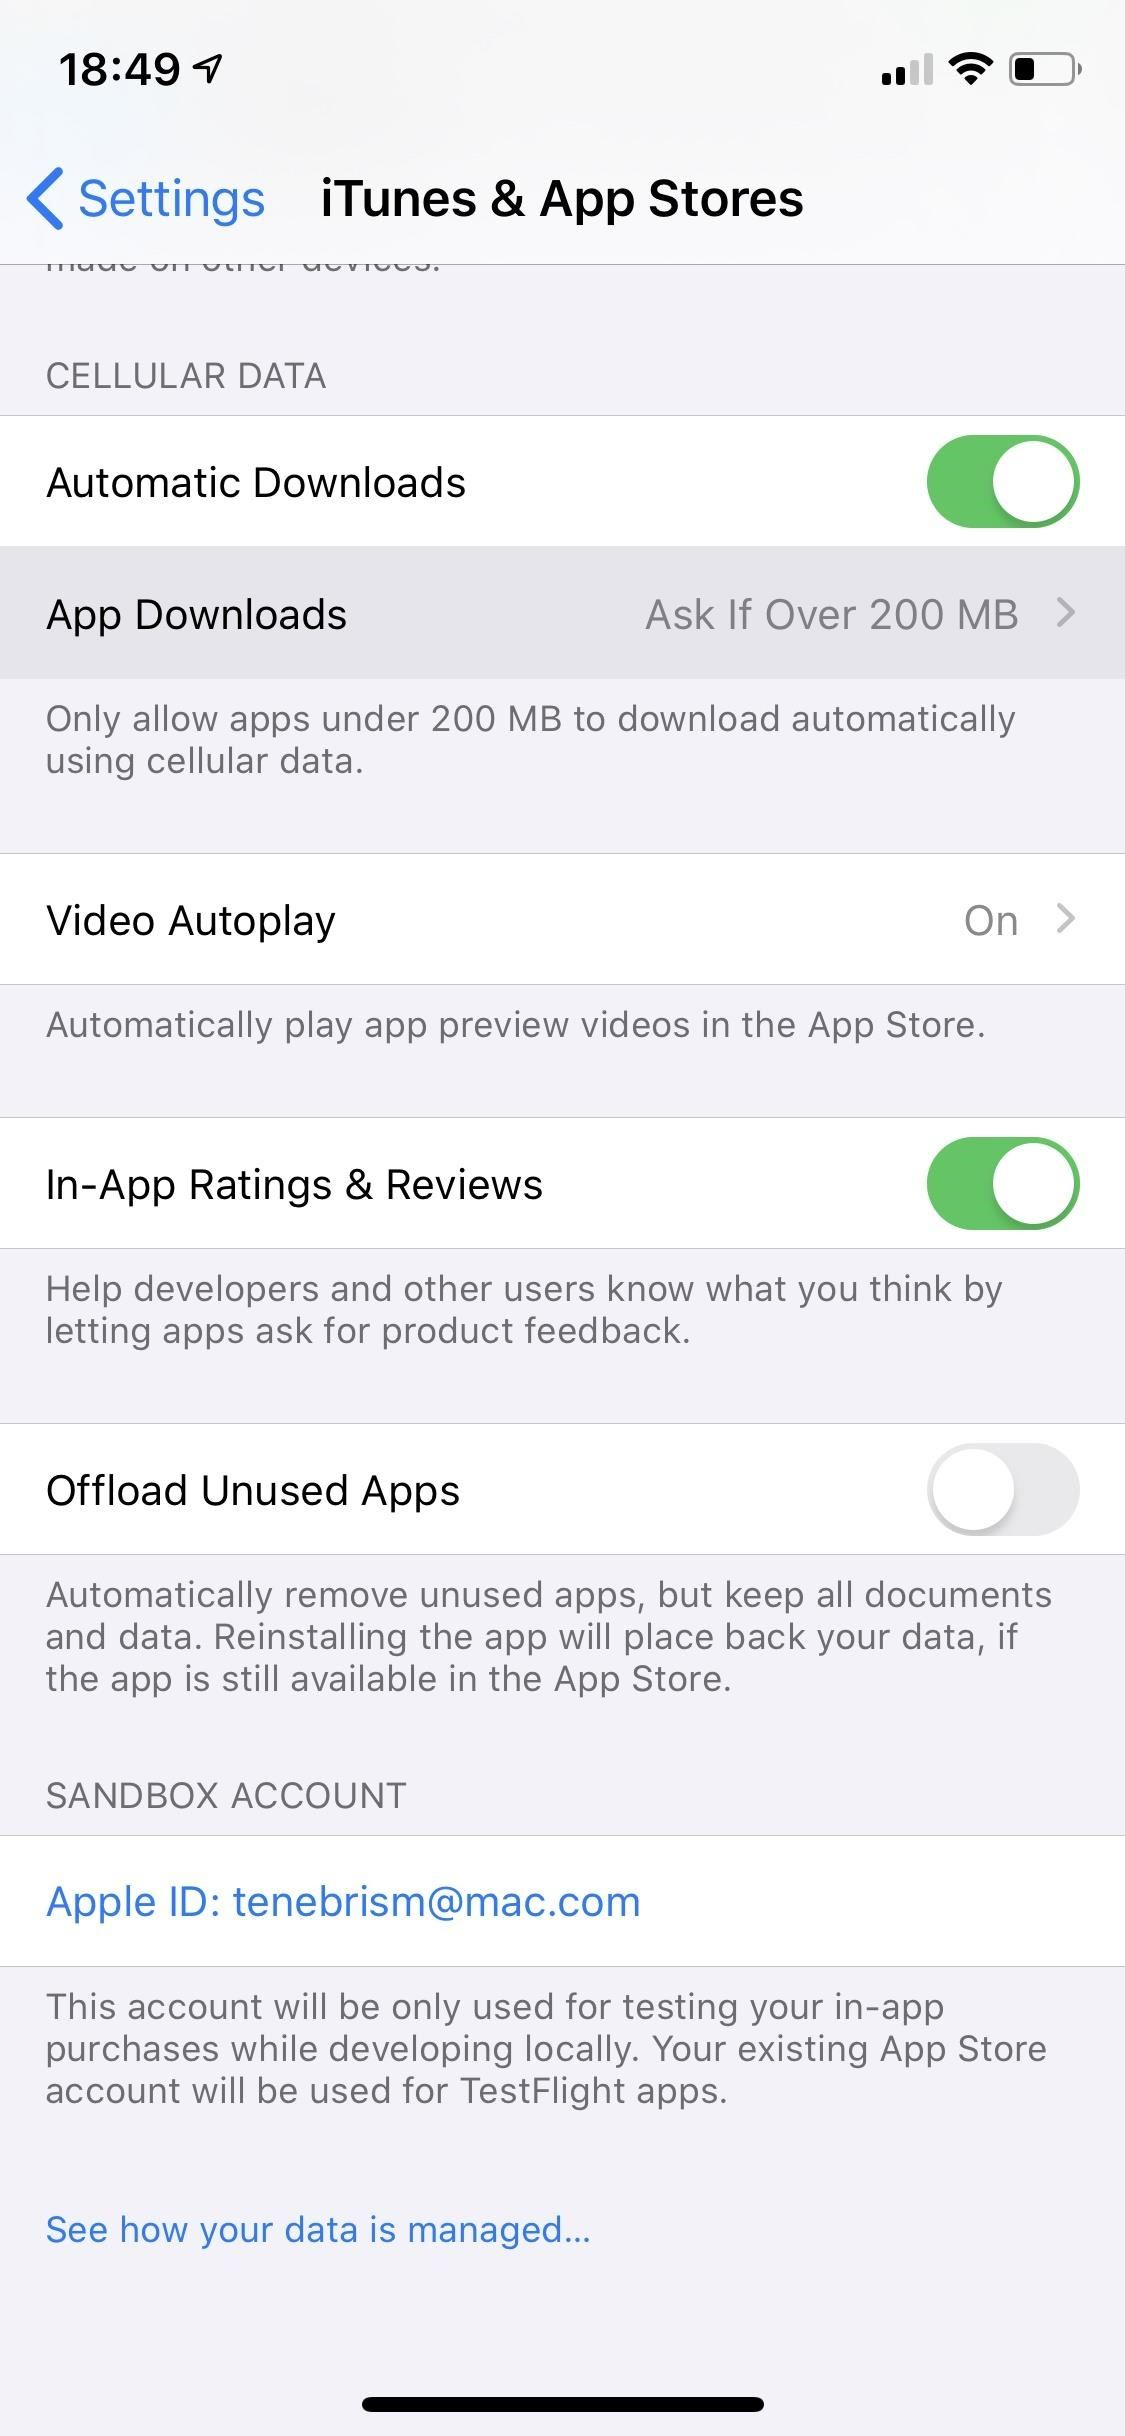 Download Apps of Any Size Using Cellular Data on Your iPhone in iOS 13 — Without Any Warnings